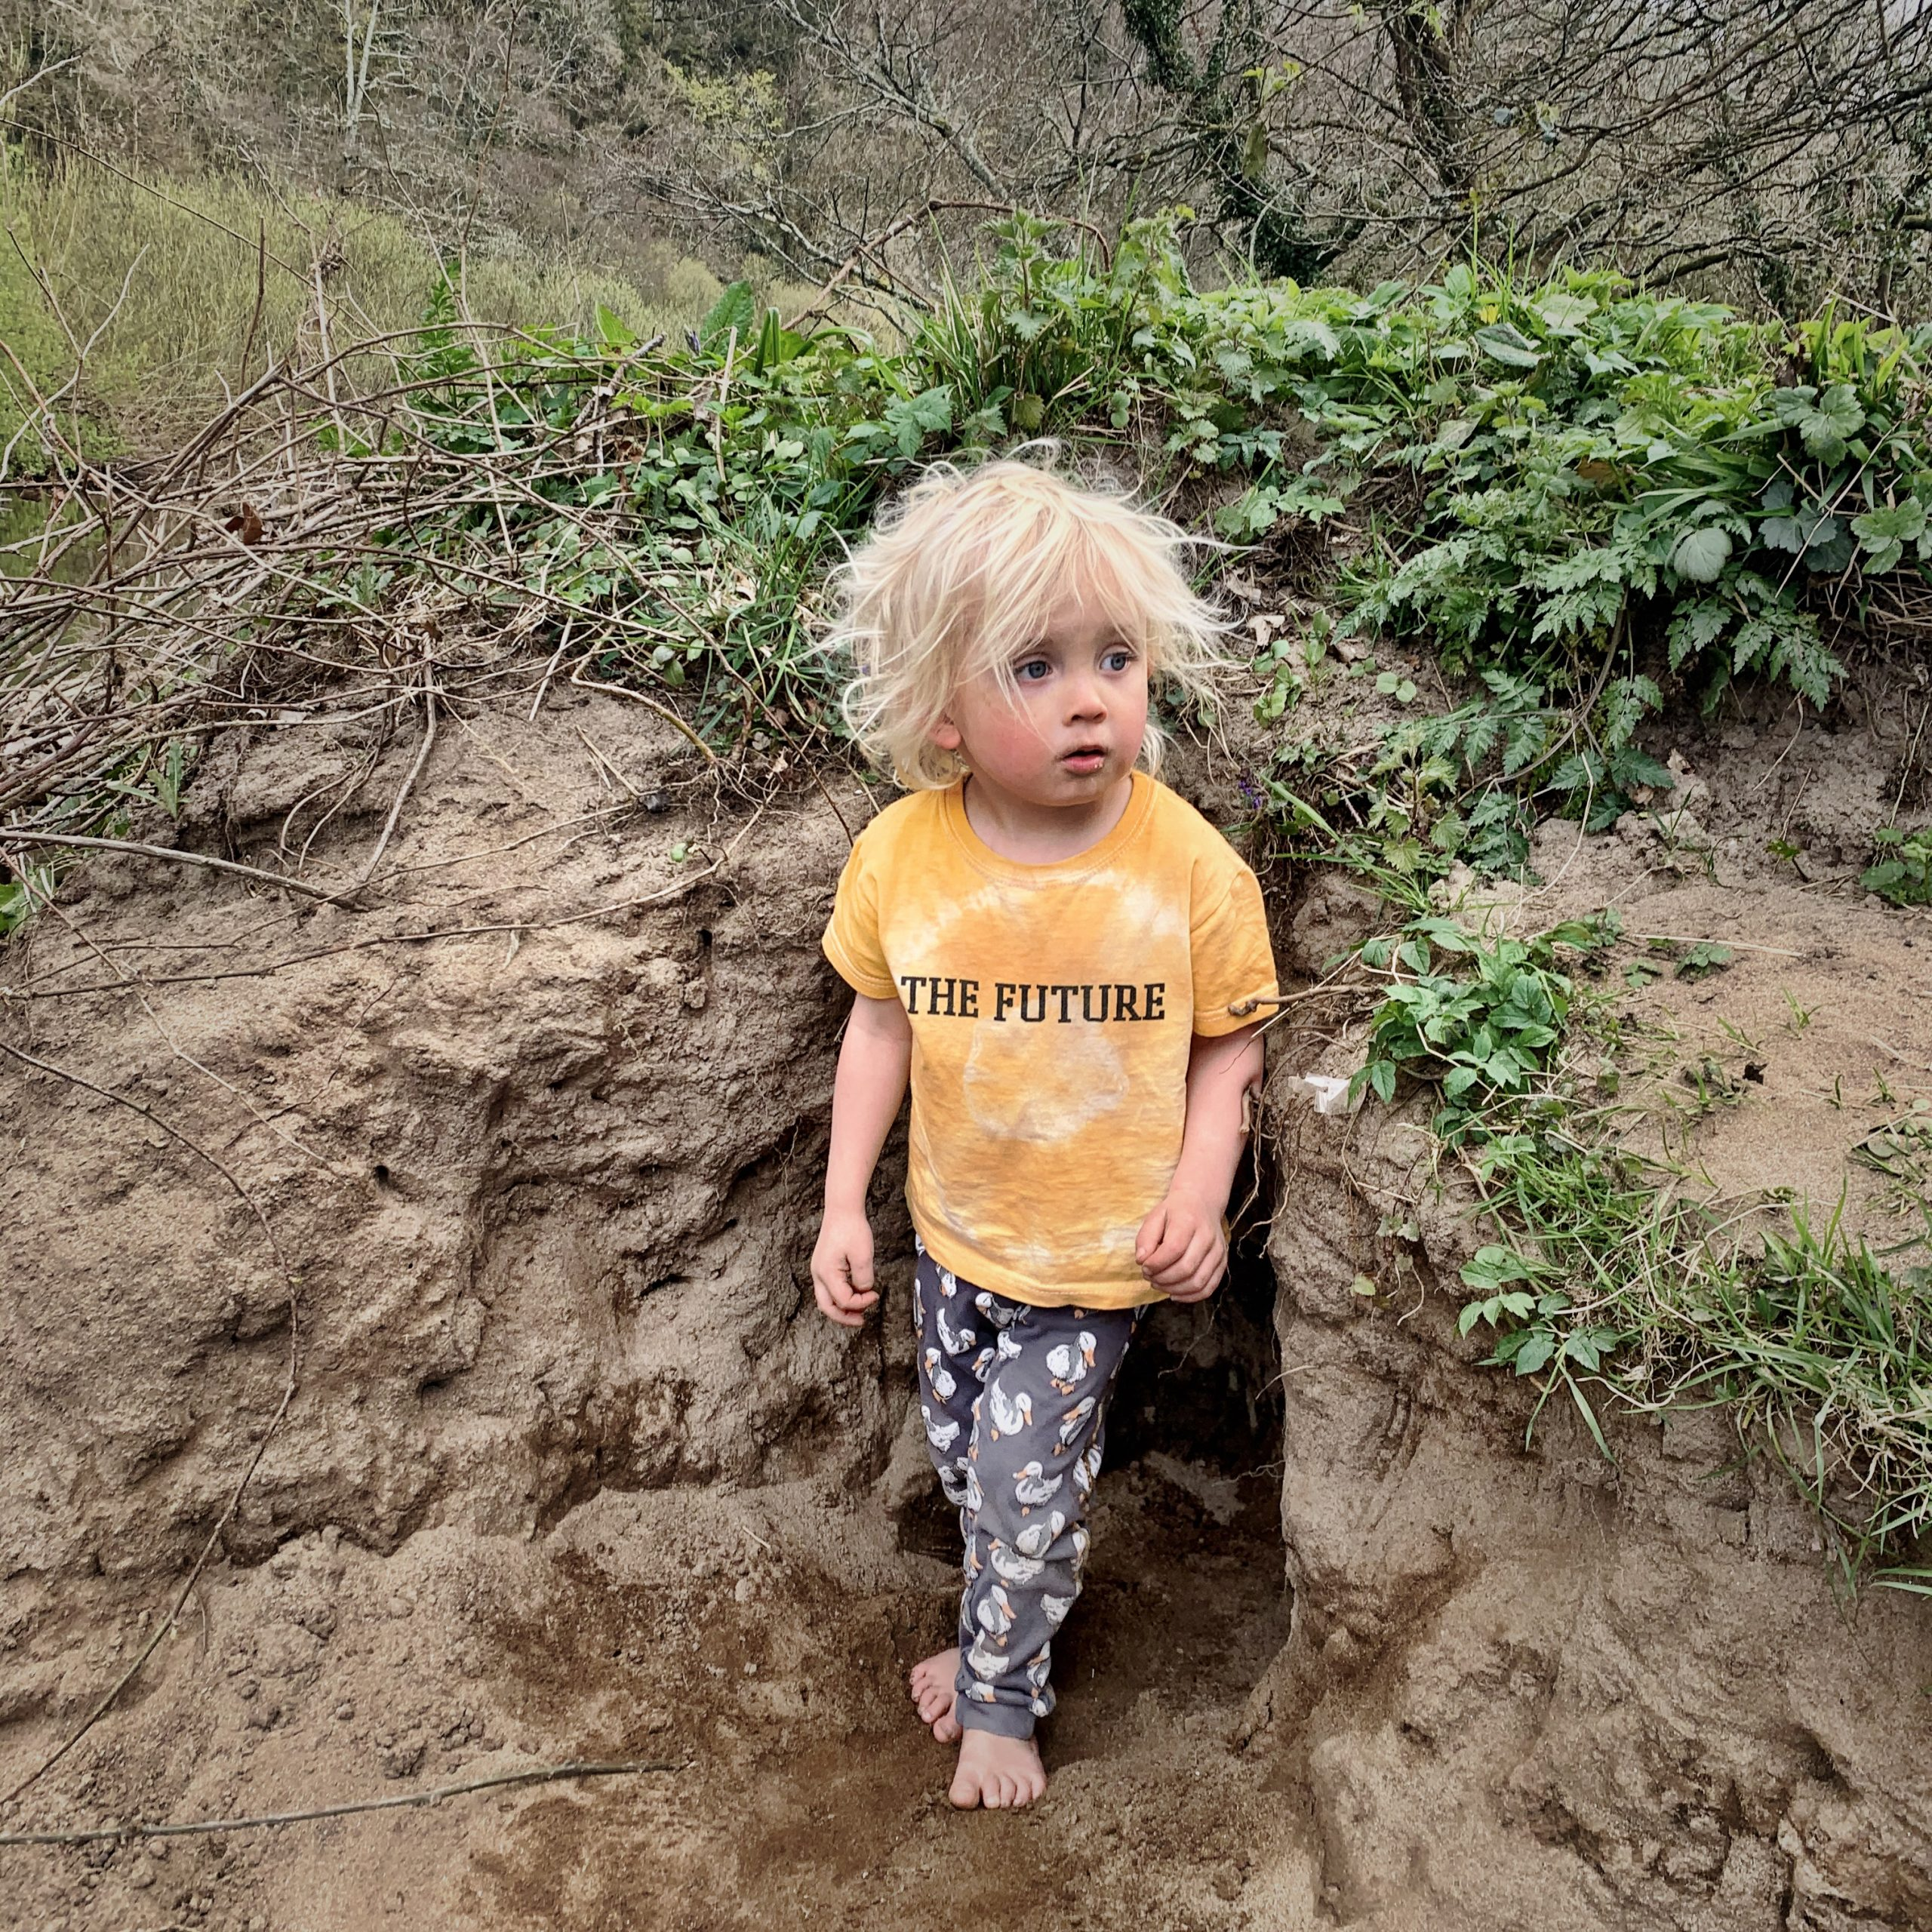 A barefoot child wearing a t-shirt with the words 'the future'